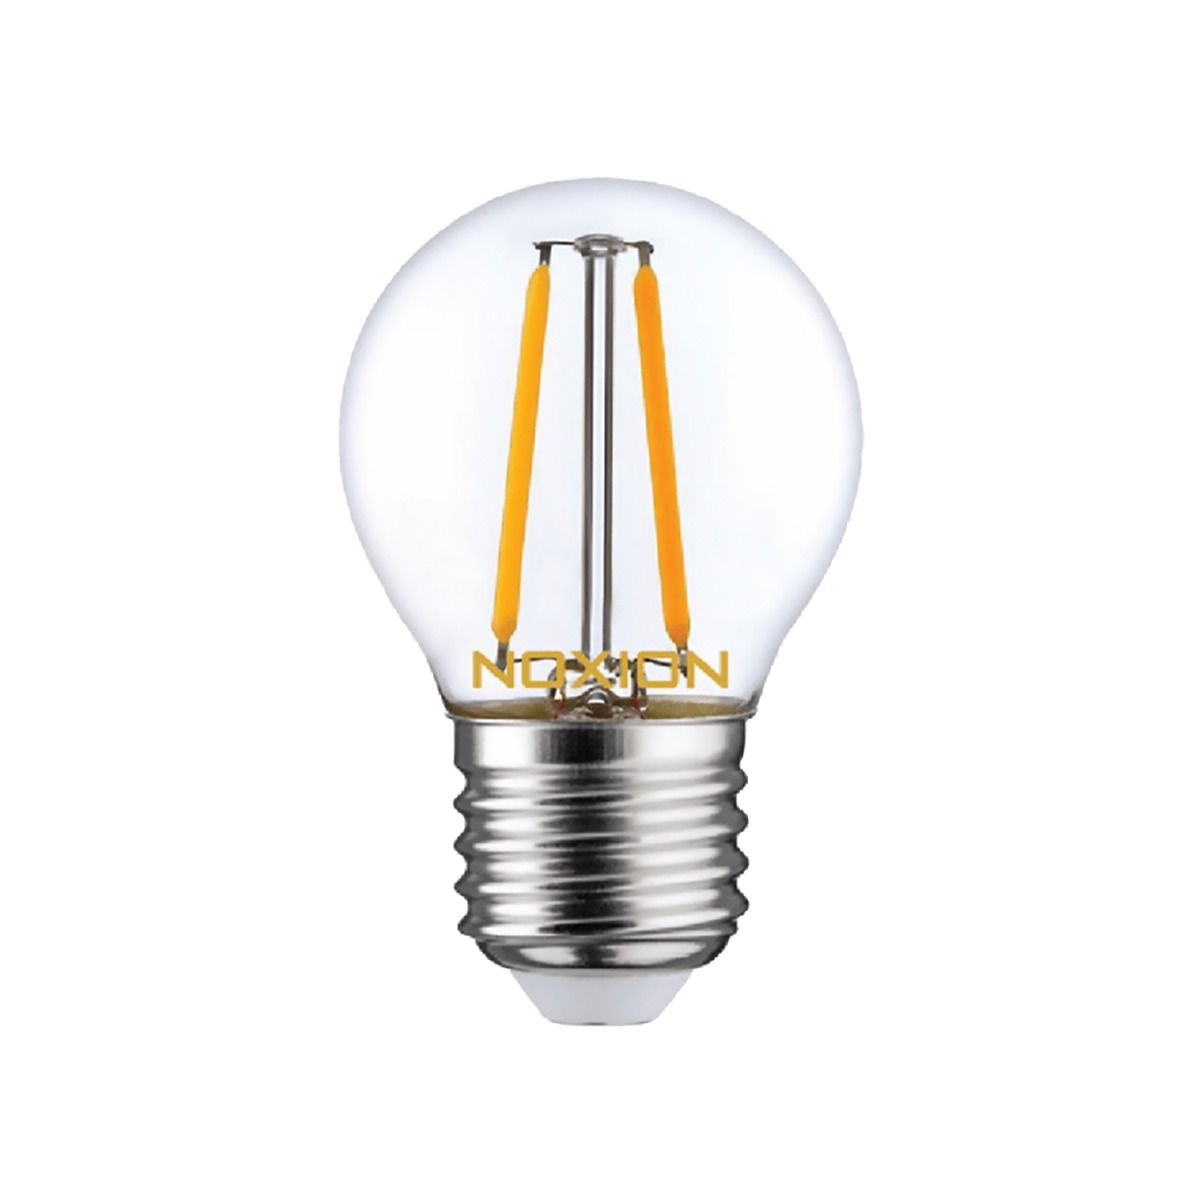 Noxion Lucent LED Lustre E27 2.5W 827 Filament   Dimmable - Replacer for 25W